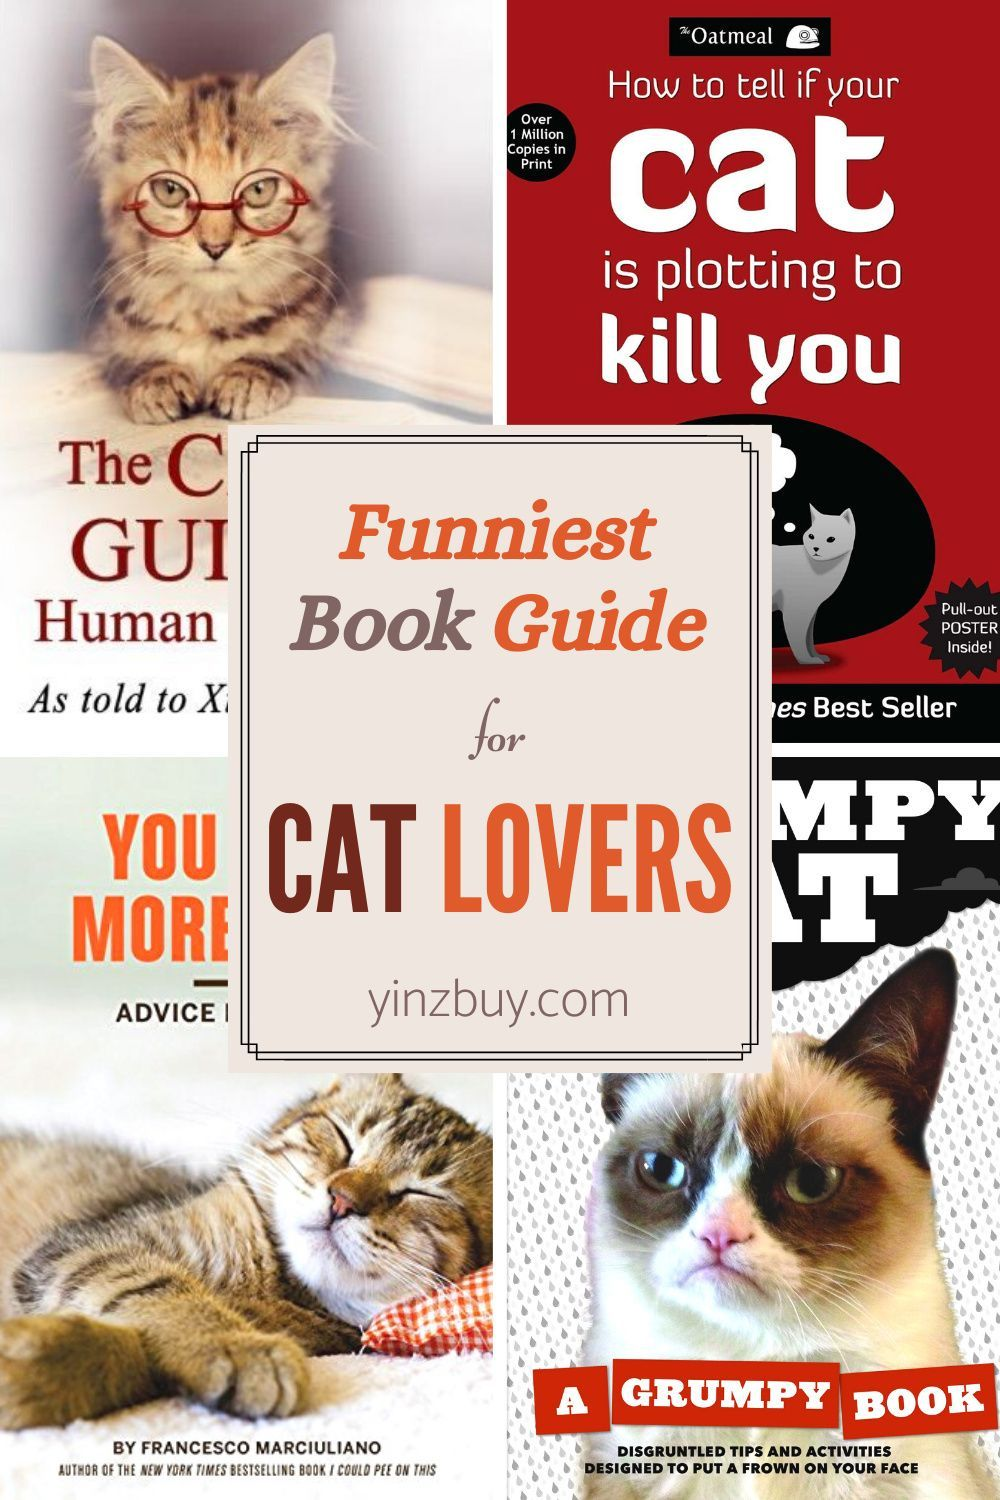 Cat Jokes And Humor The 10 Best Books For Cat Lovers Yinz Buy In 2020 Cat Jokes Cat Lovers Cat Gifts For Her